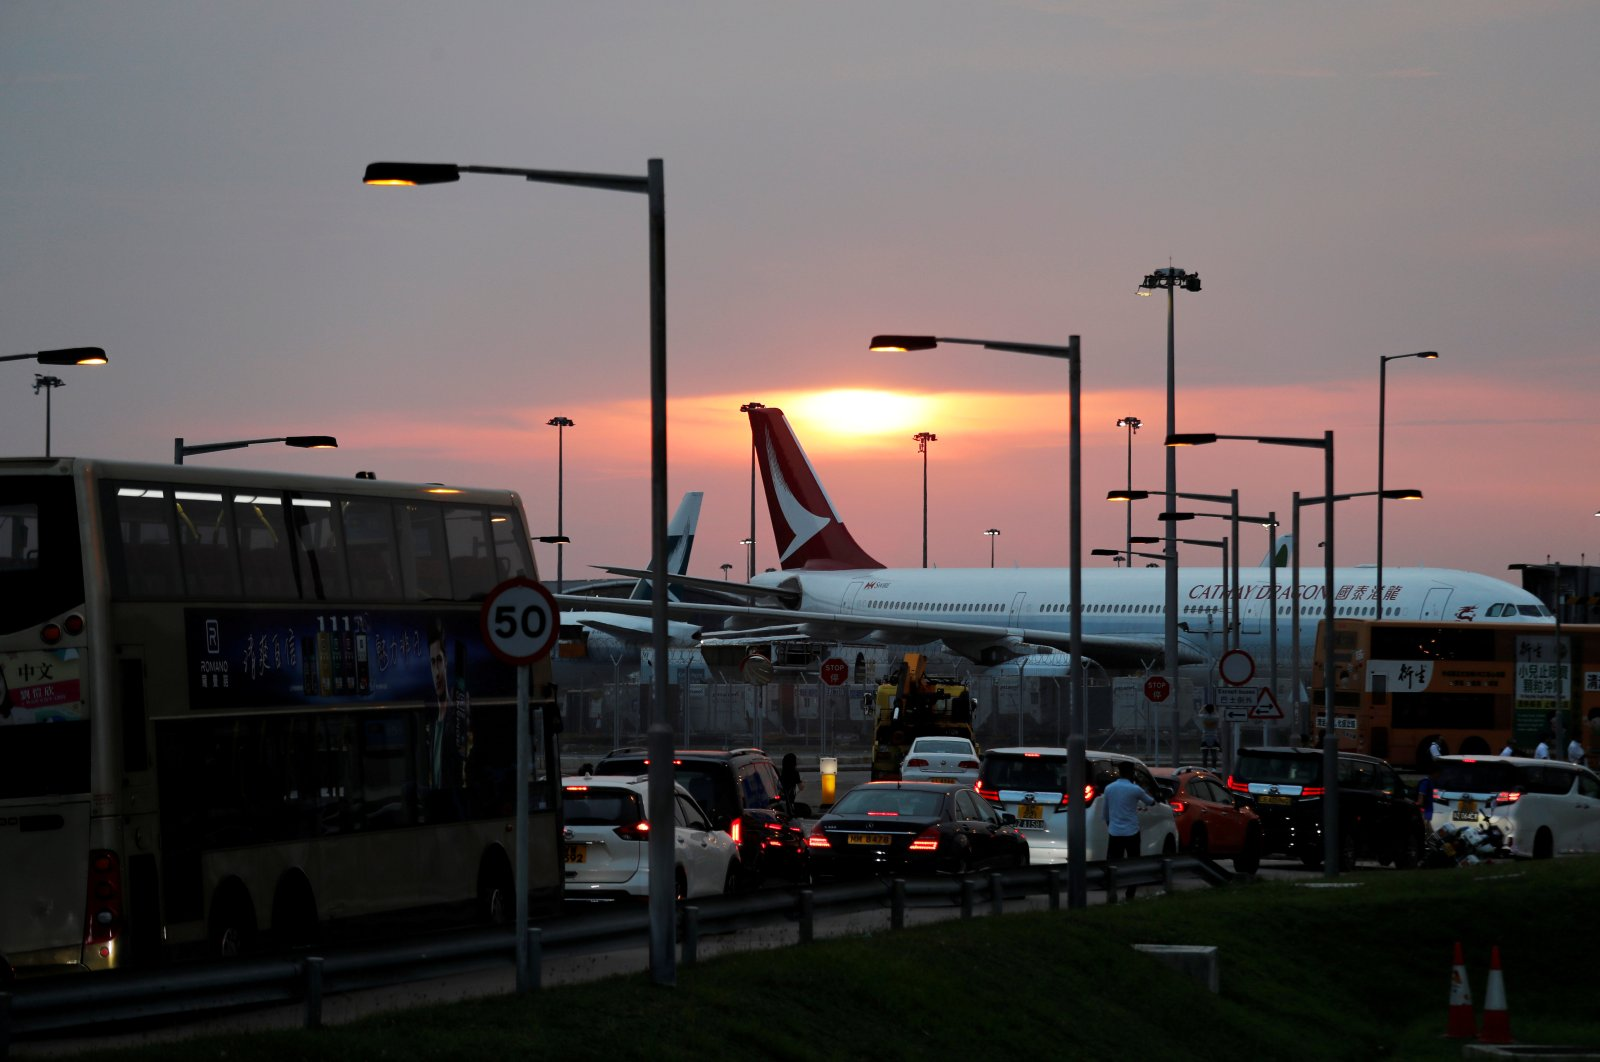 A picture shows a traffic jam along a highway as a Cathay Dragon plane is pictured in the background during an anti-extradition bill demonstration after a woman was shot in the eye in a protest in Hong Kong International Airport, Hong Kong, Aug. 12, 2019. (Reuters Photo)